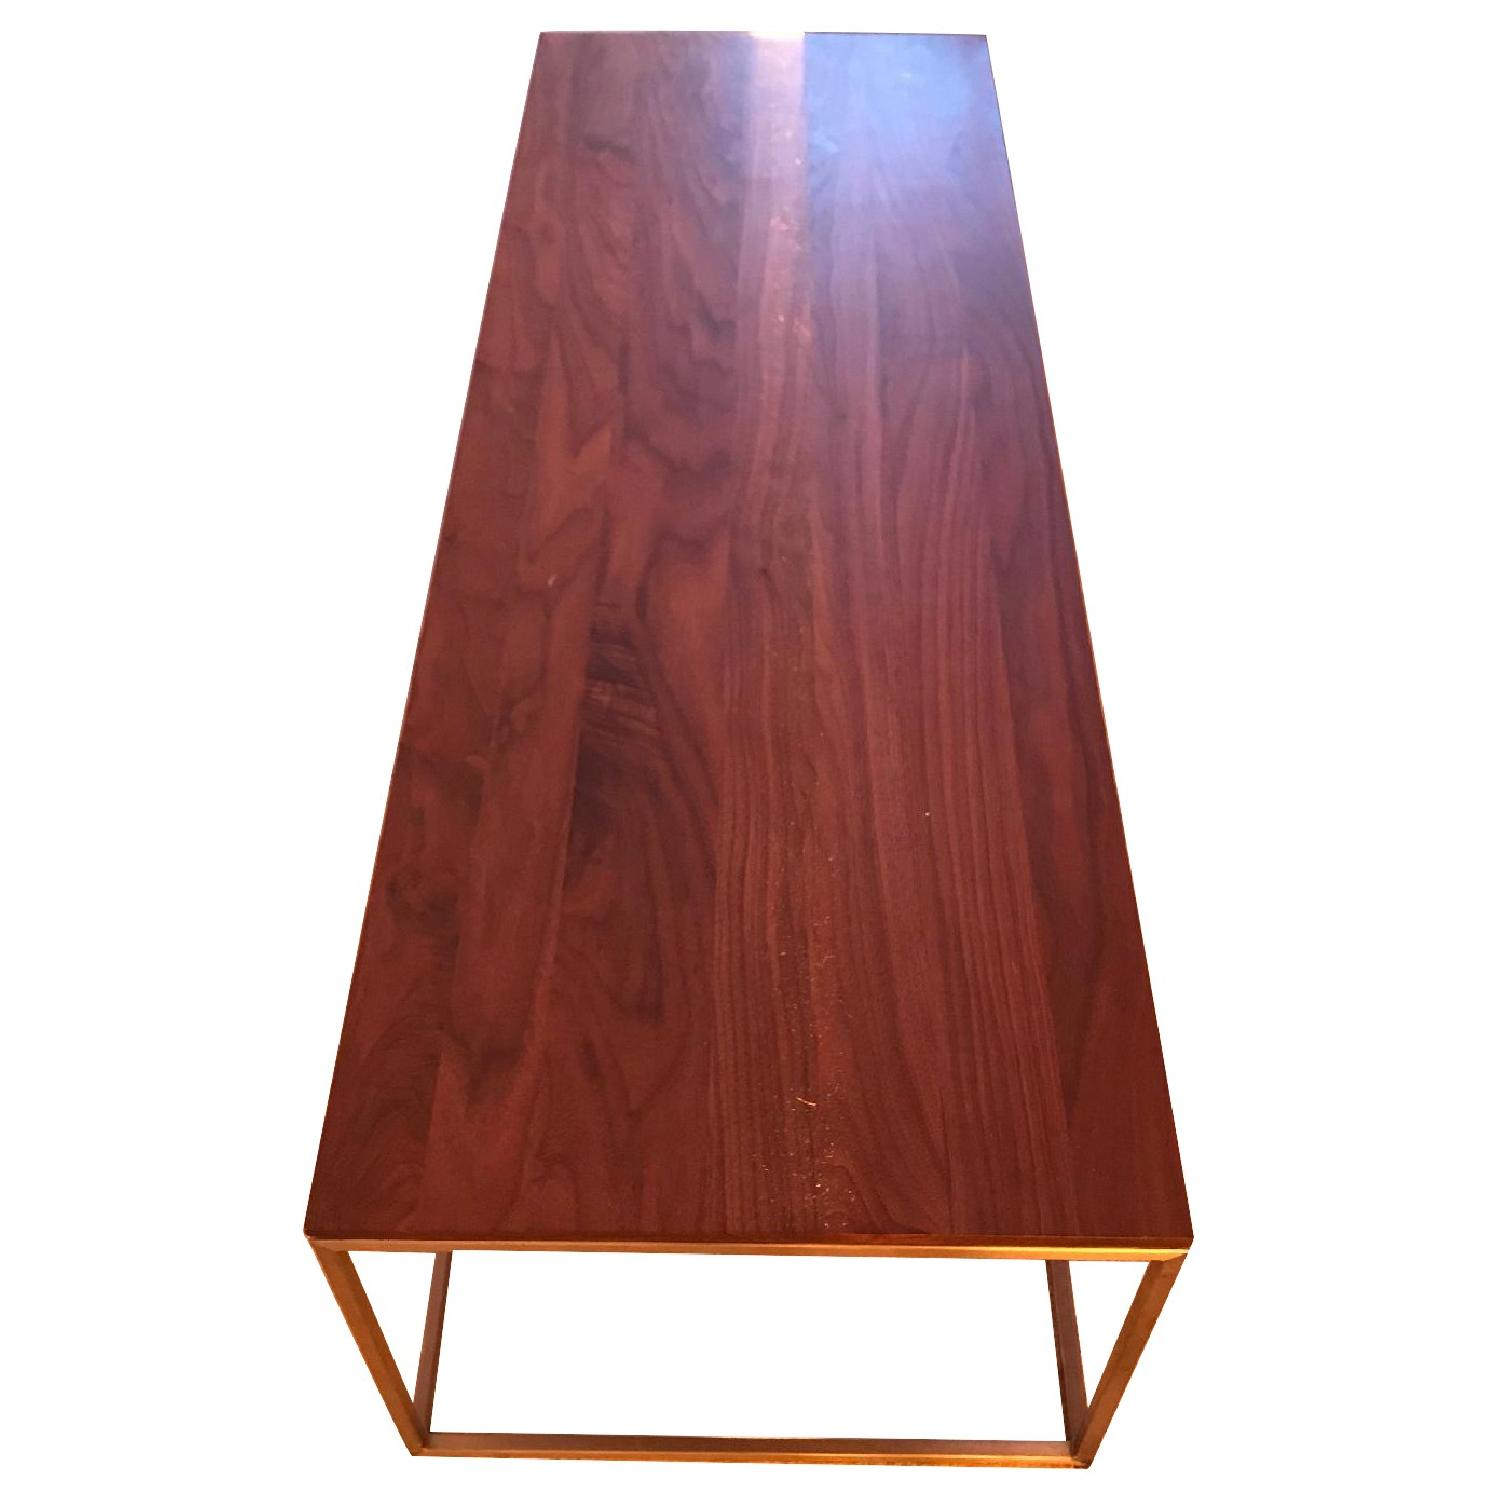 Crate & Barrel Frame Coffee Table